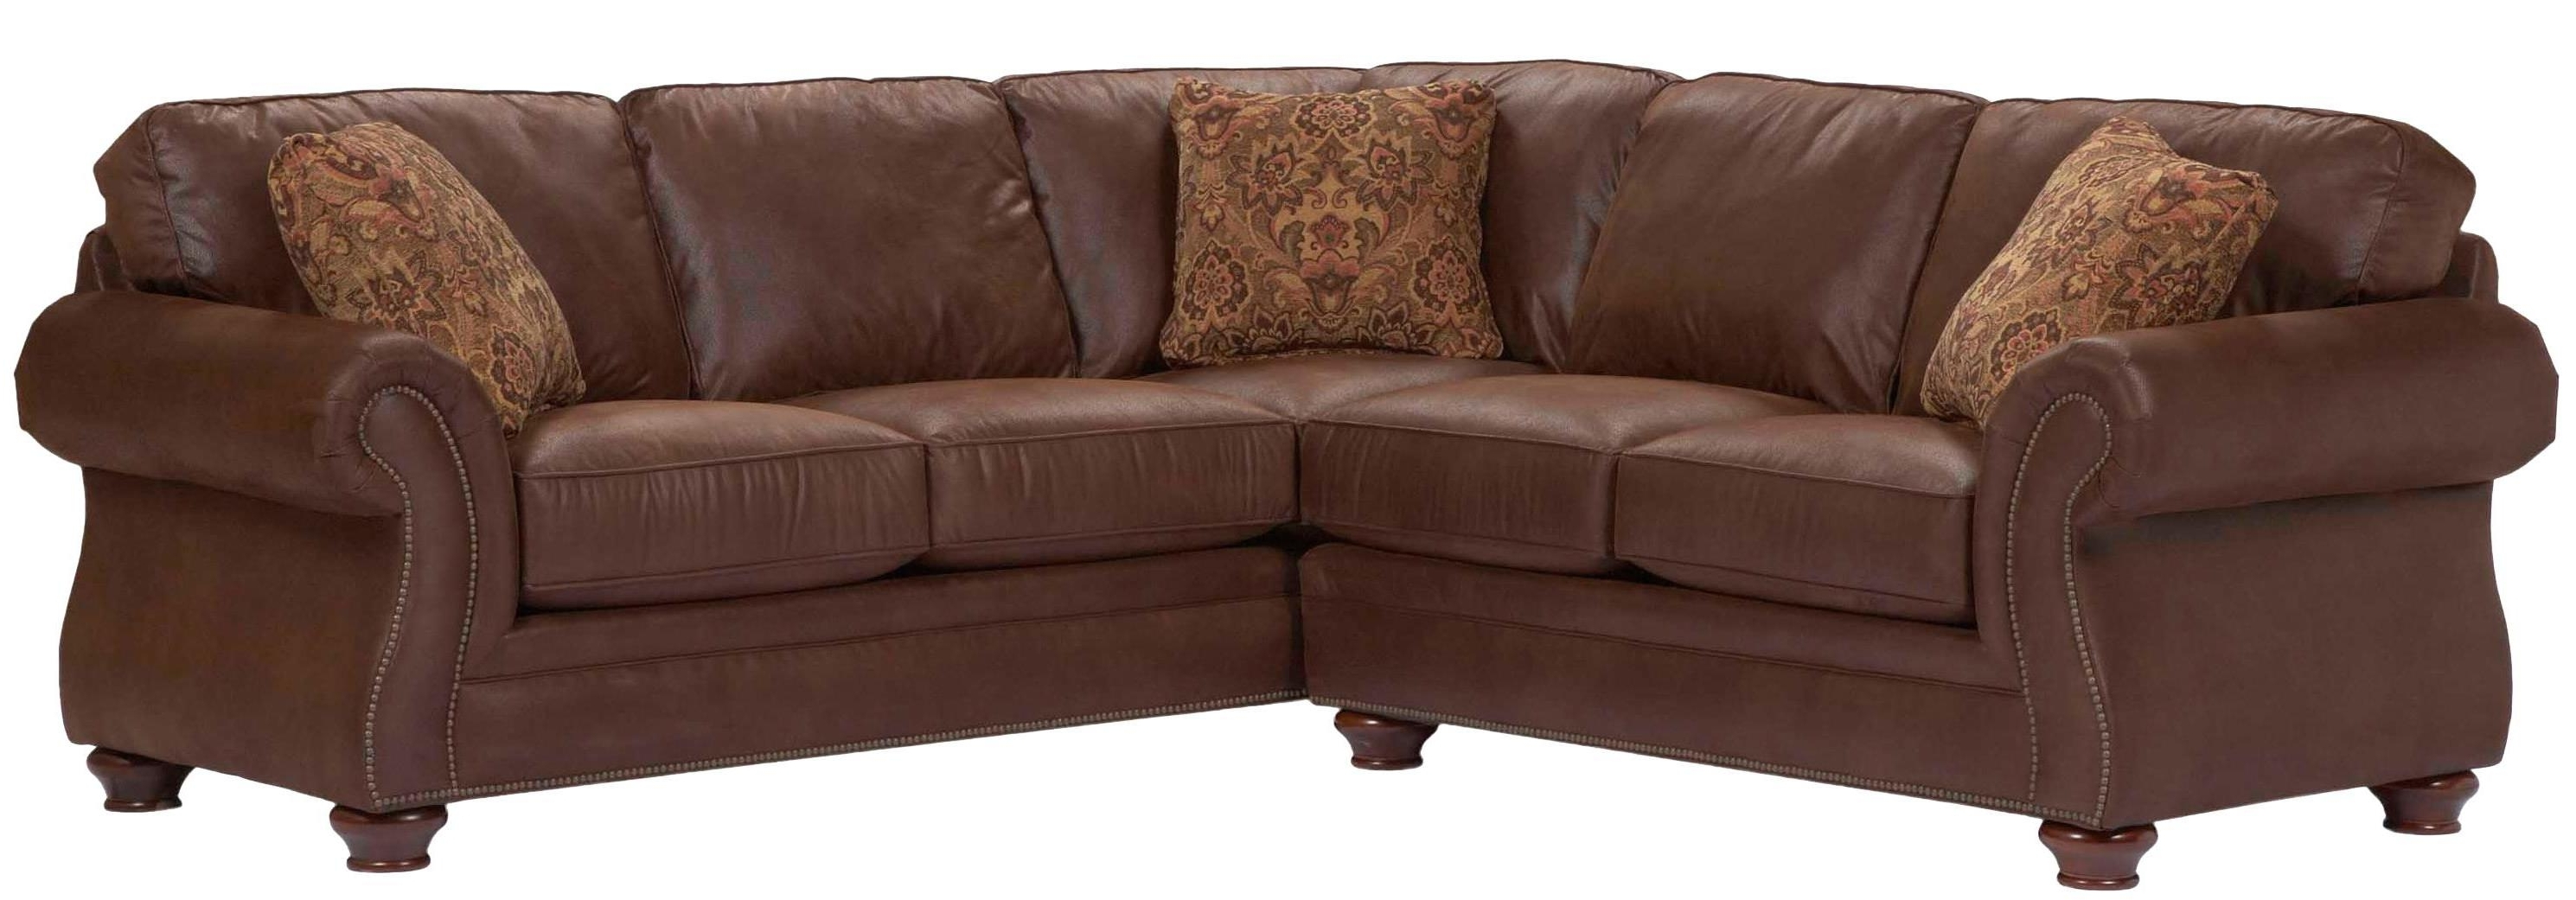 Wayside Within Most Recent Broyhill Sectional Sofas (View 17 of 20)